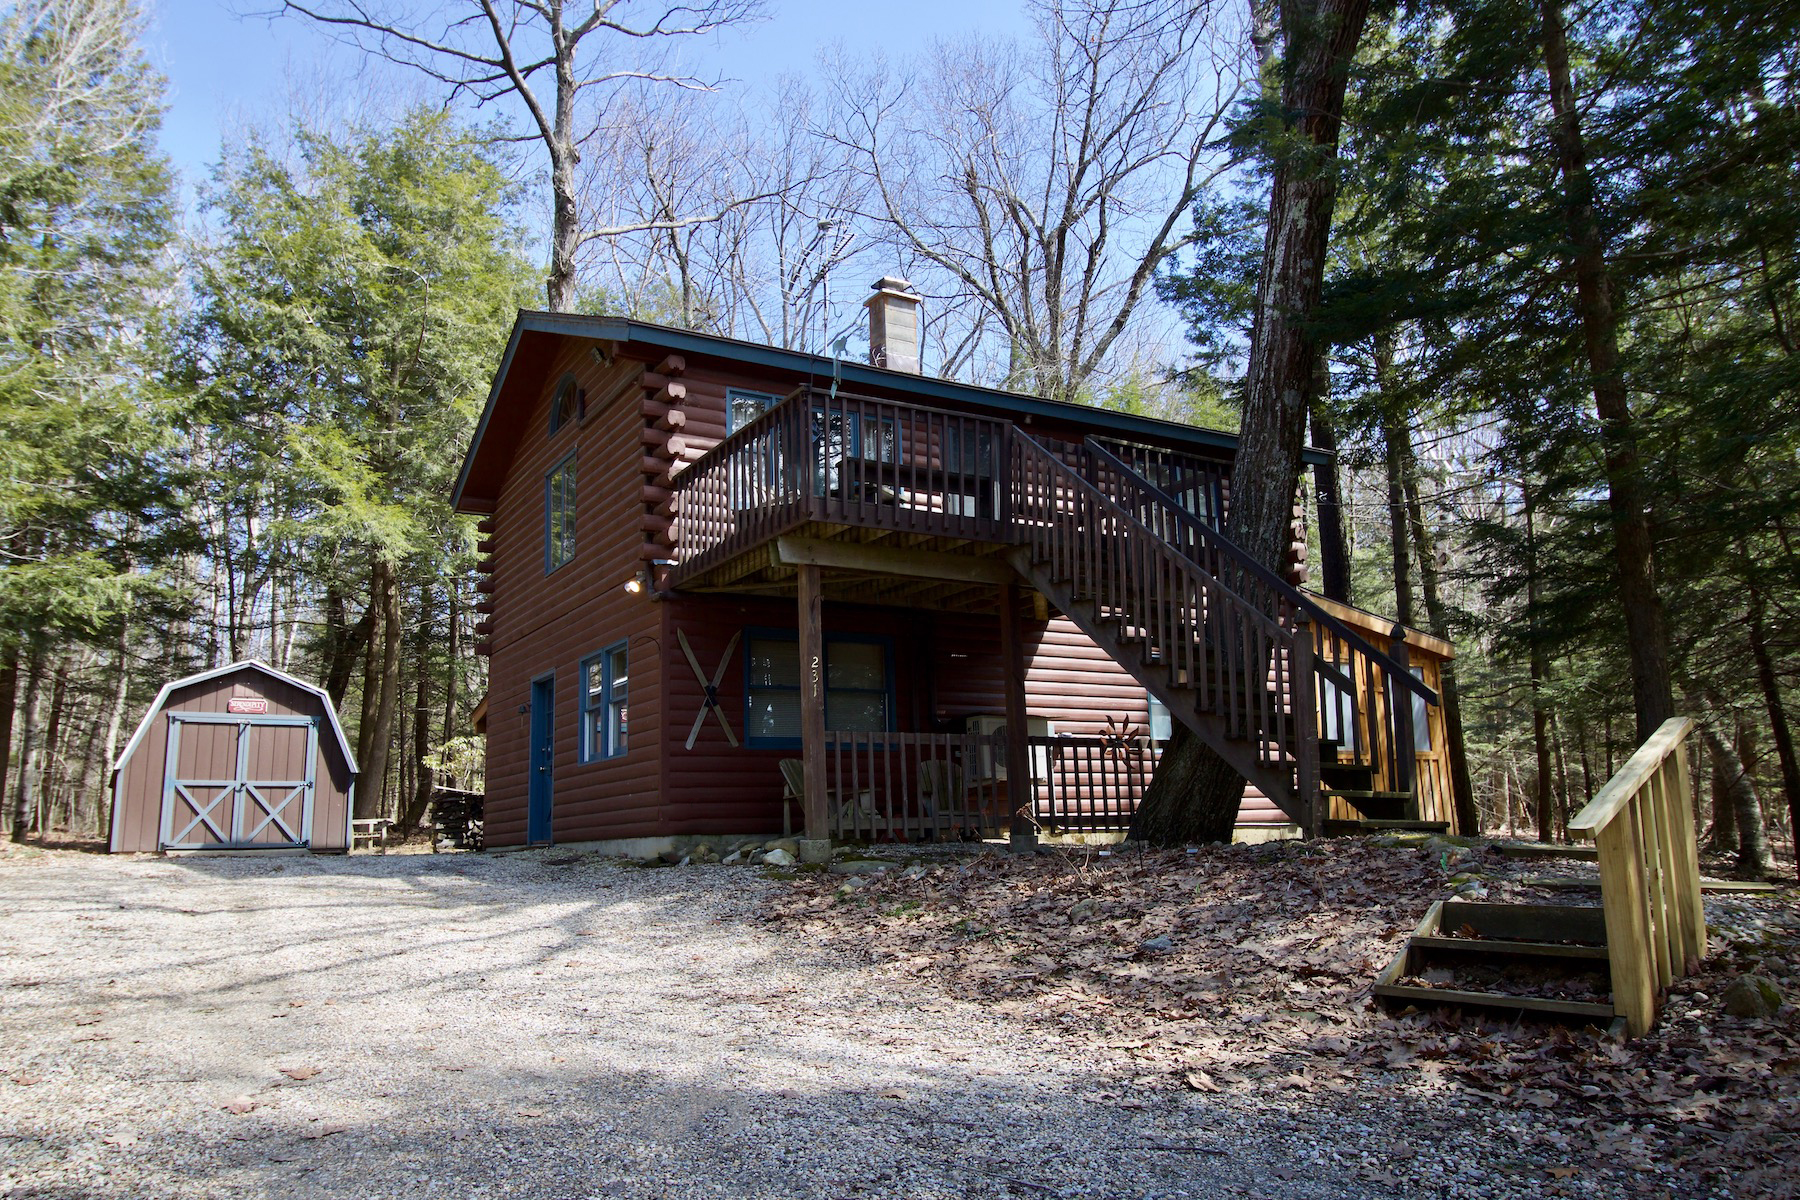 Single Family Home for Active at Adorable and Affordable Log Home with Lake Views 231 Sherwood Dr Becket, Massachusetts 01223 United States